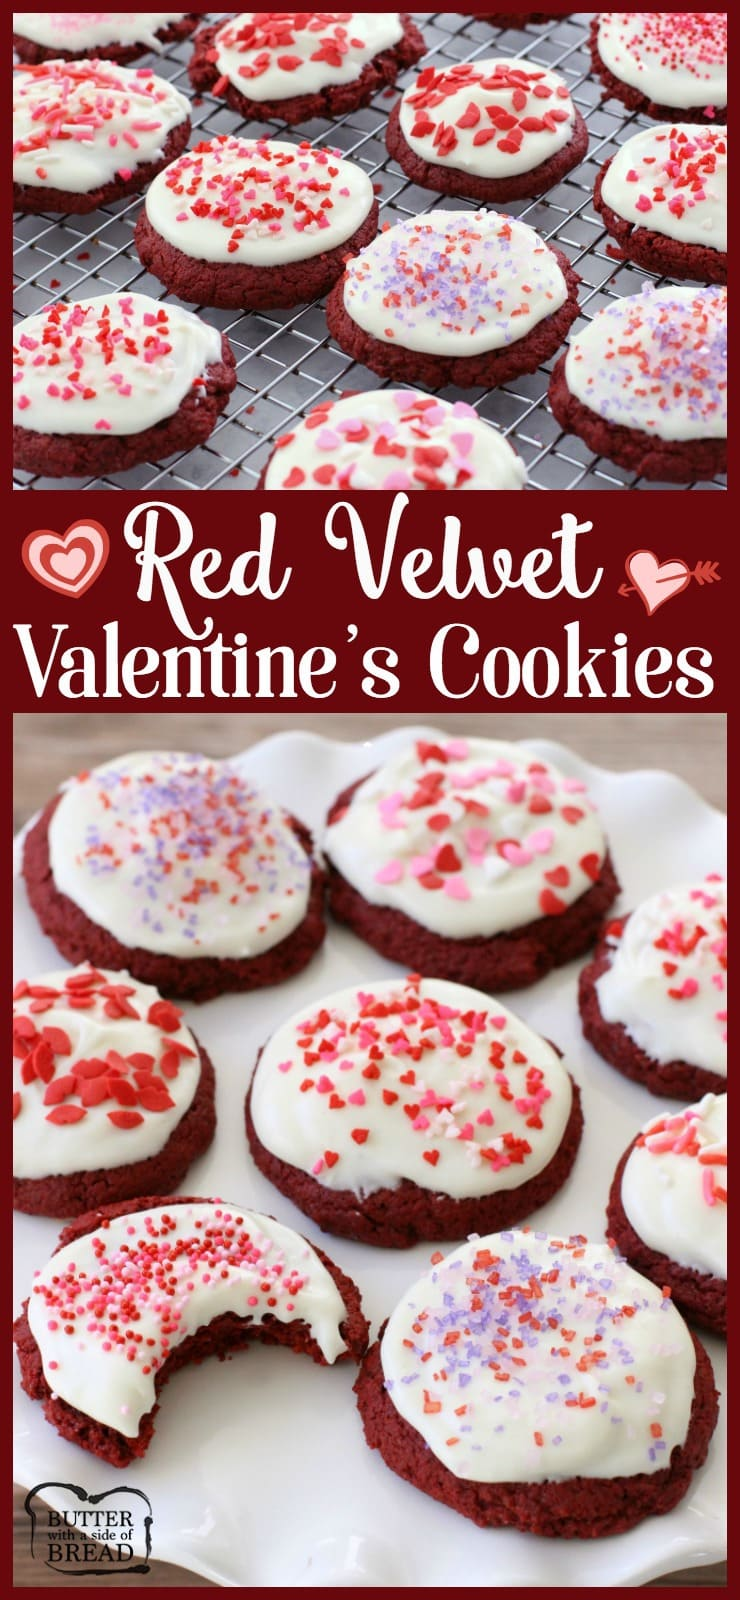 Red Velvet Valentine Cookies are rich and delicate red velvet cookies with cream cheese frosting. Unlike baking red velvet cake, these cookies are easy to make and practically foolproof!